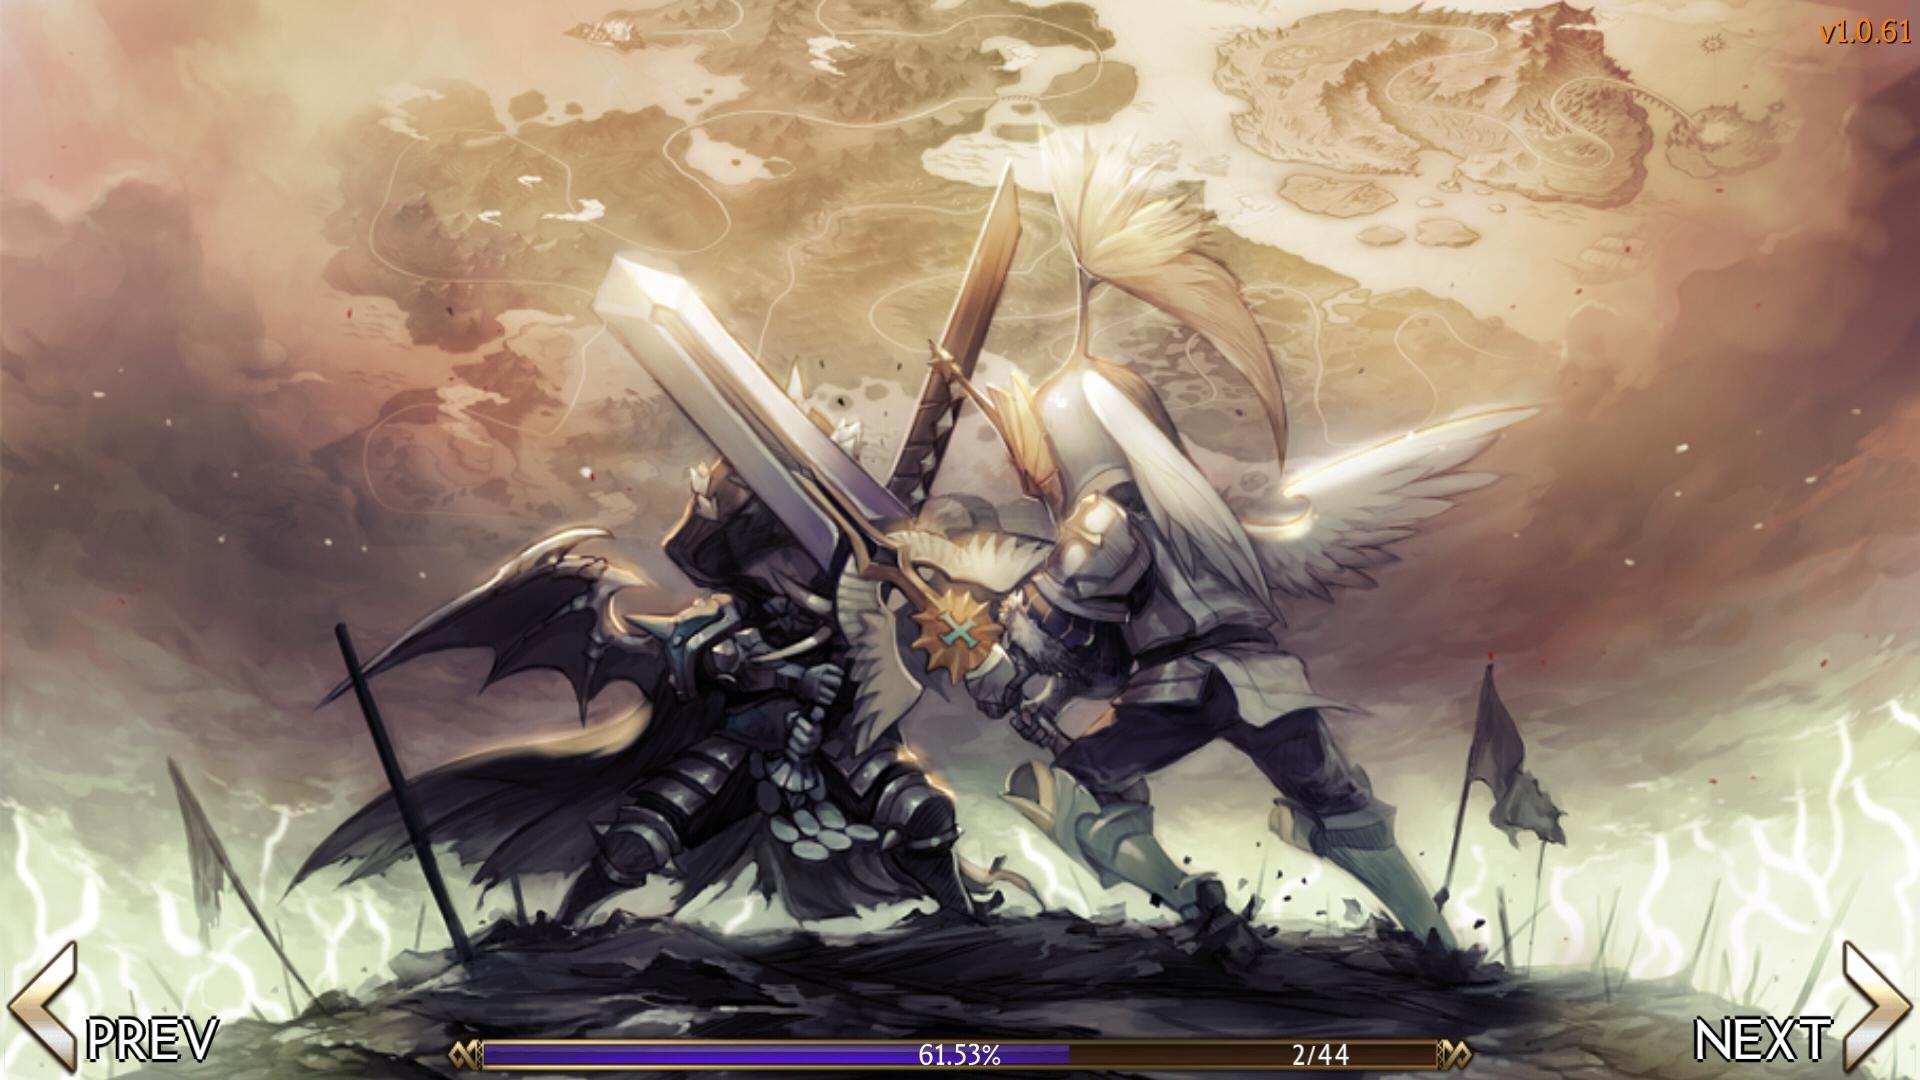 Anime Seven Knights Wallpaper 4k For Android Apk Download